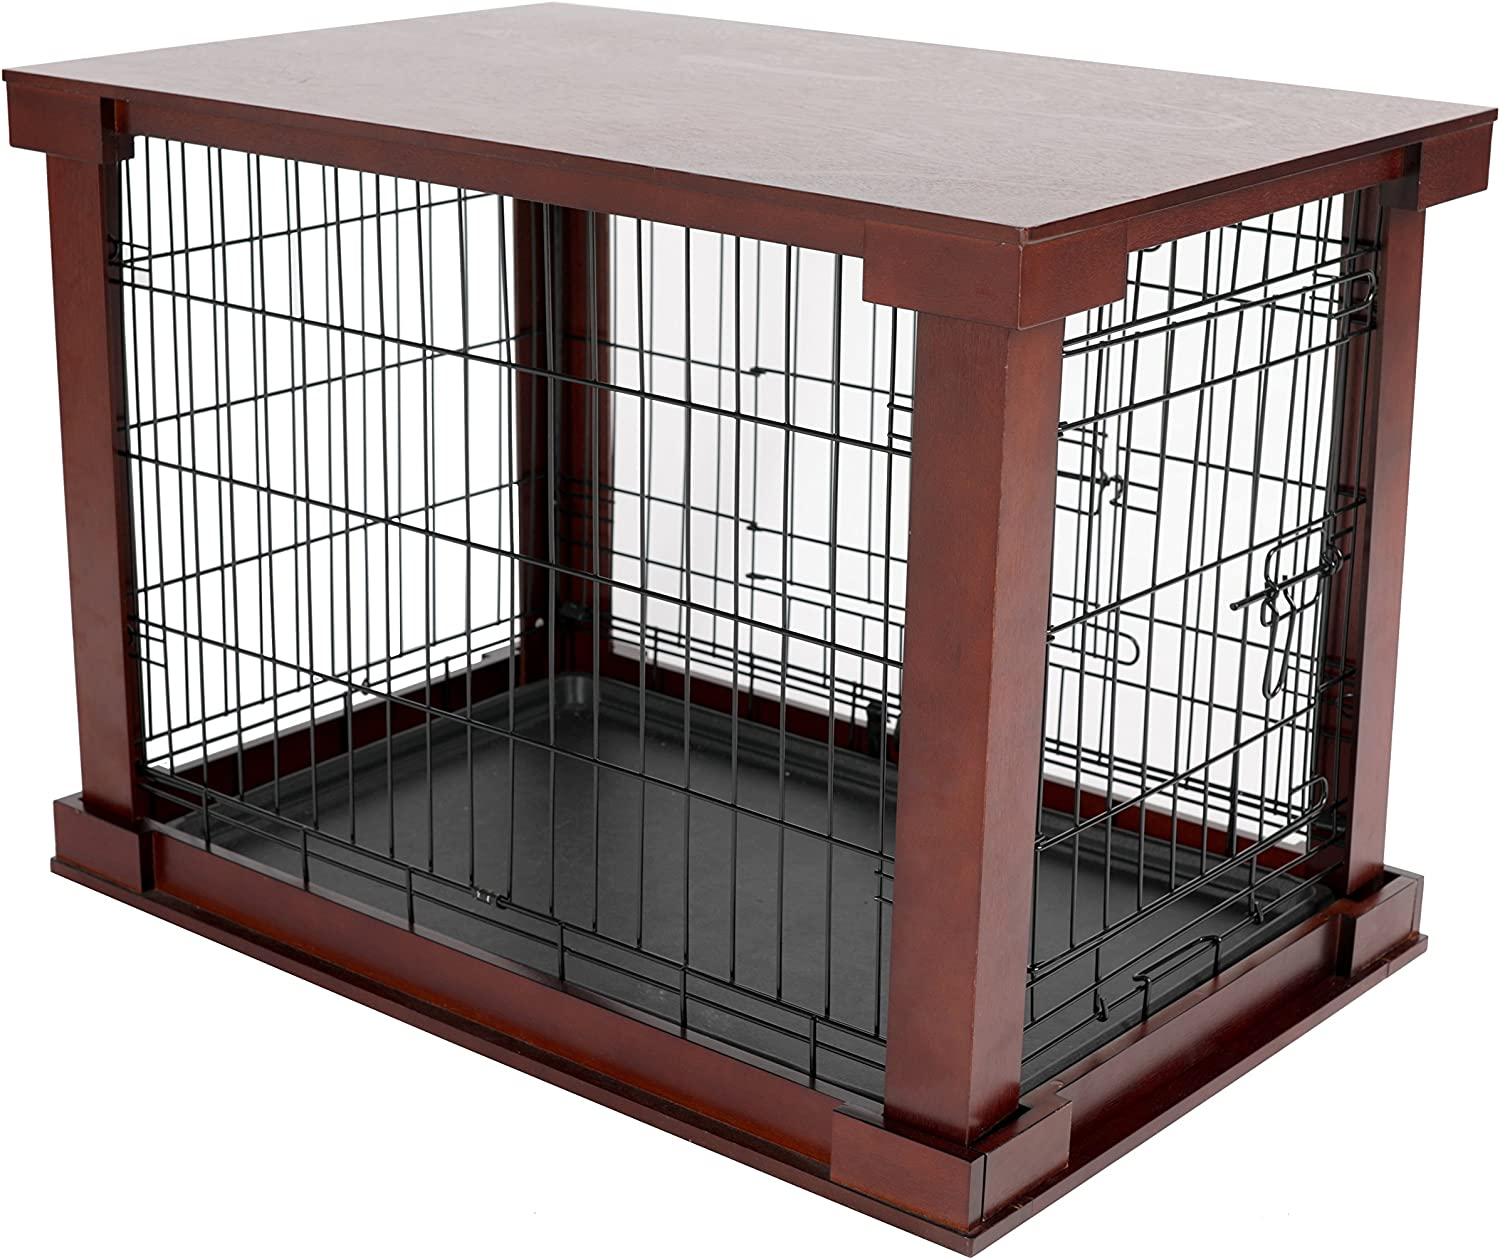 Merry Products Cage/Crate